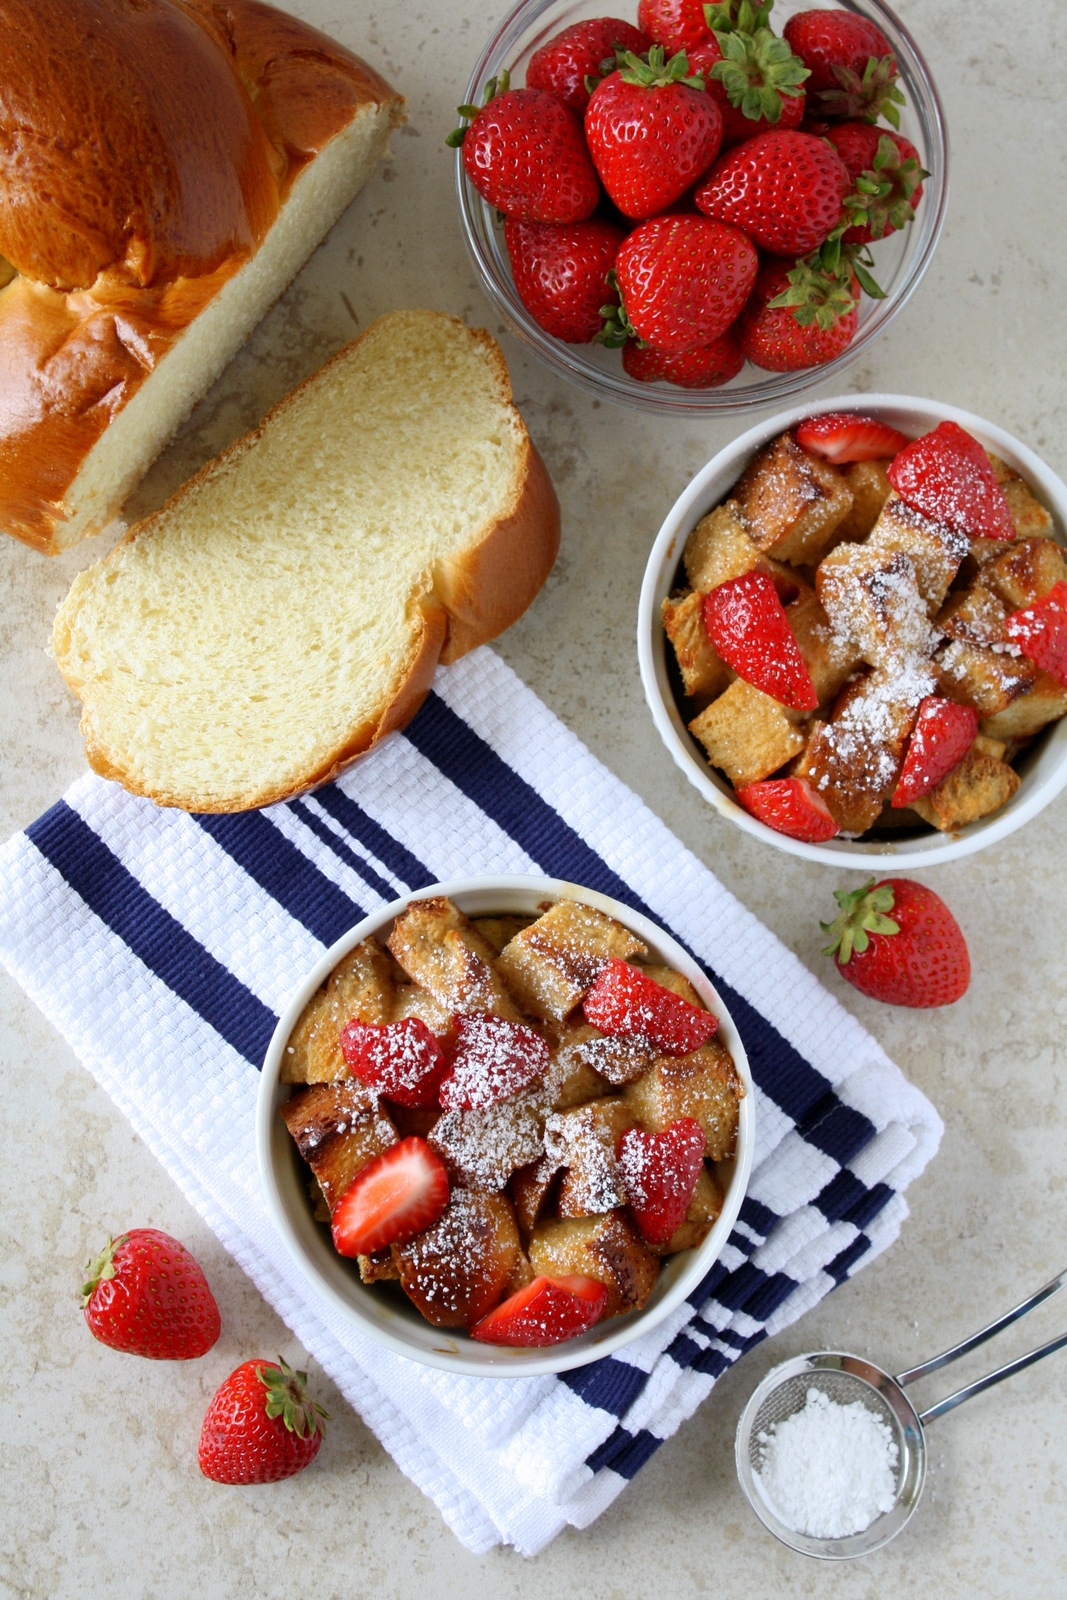 Strawberry Shortcake Bread Pudding #DairyFree4All #shop